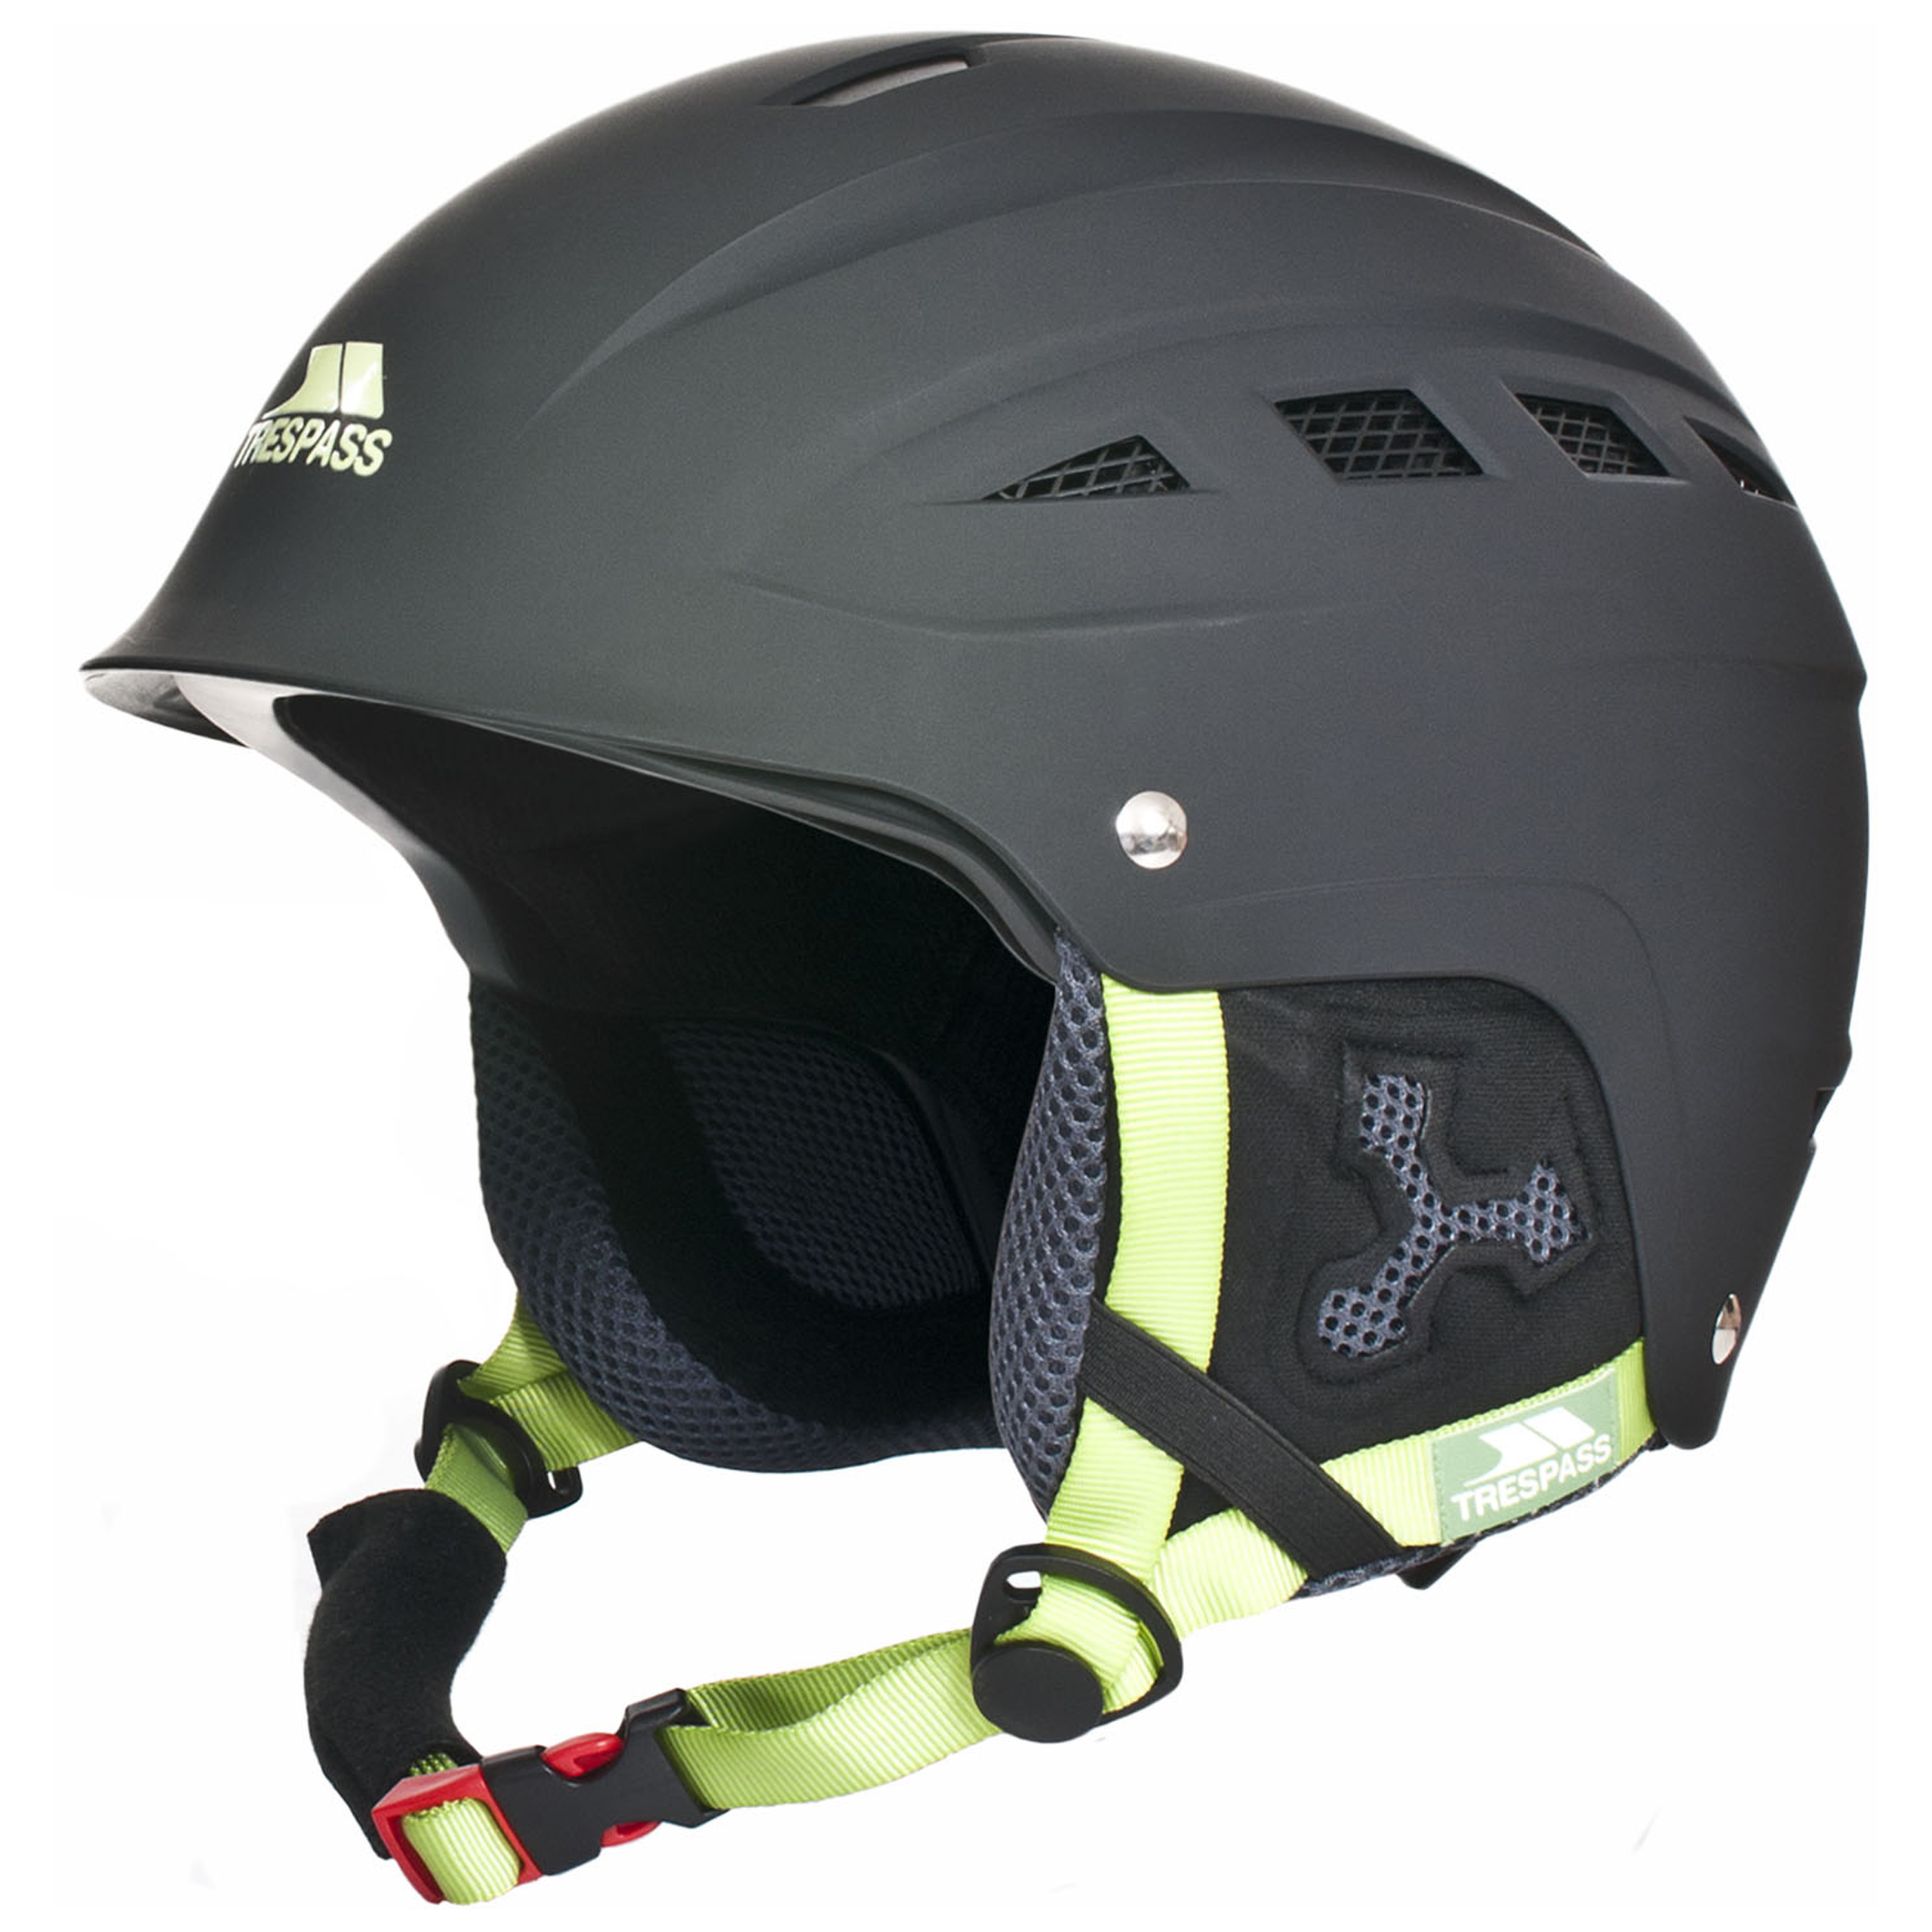 Furillo Adults Ski Helmet - Black